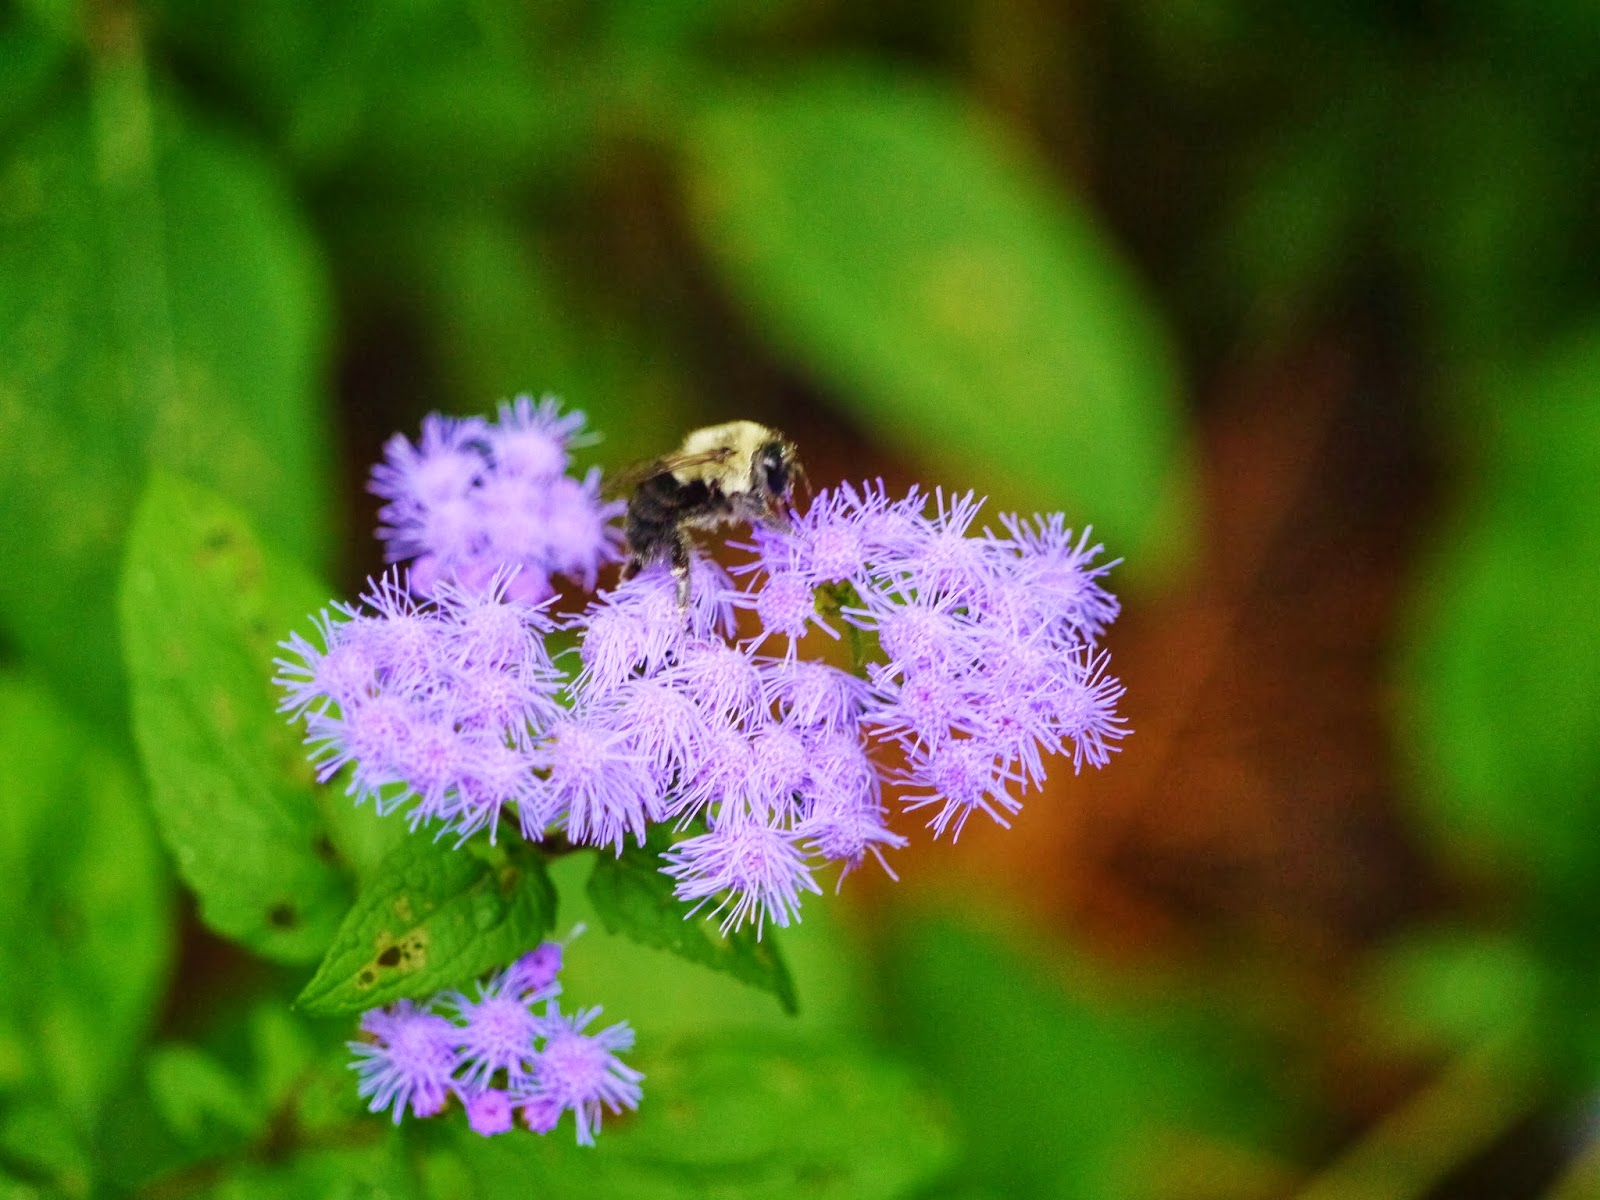 Gardensduke plant spotlight blue mistflower the button like fluffy blue flowers attract butterflies and bees and theyre worth seeing in person since the depth of color is difficult to capture with izmirmasajfo